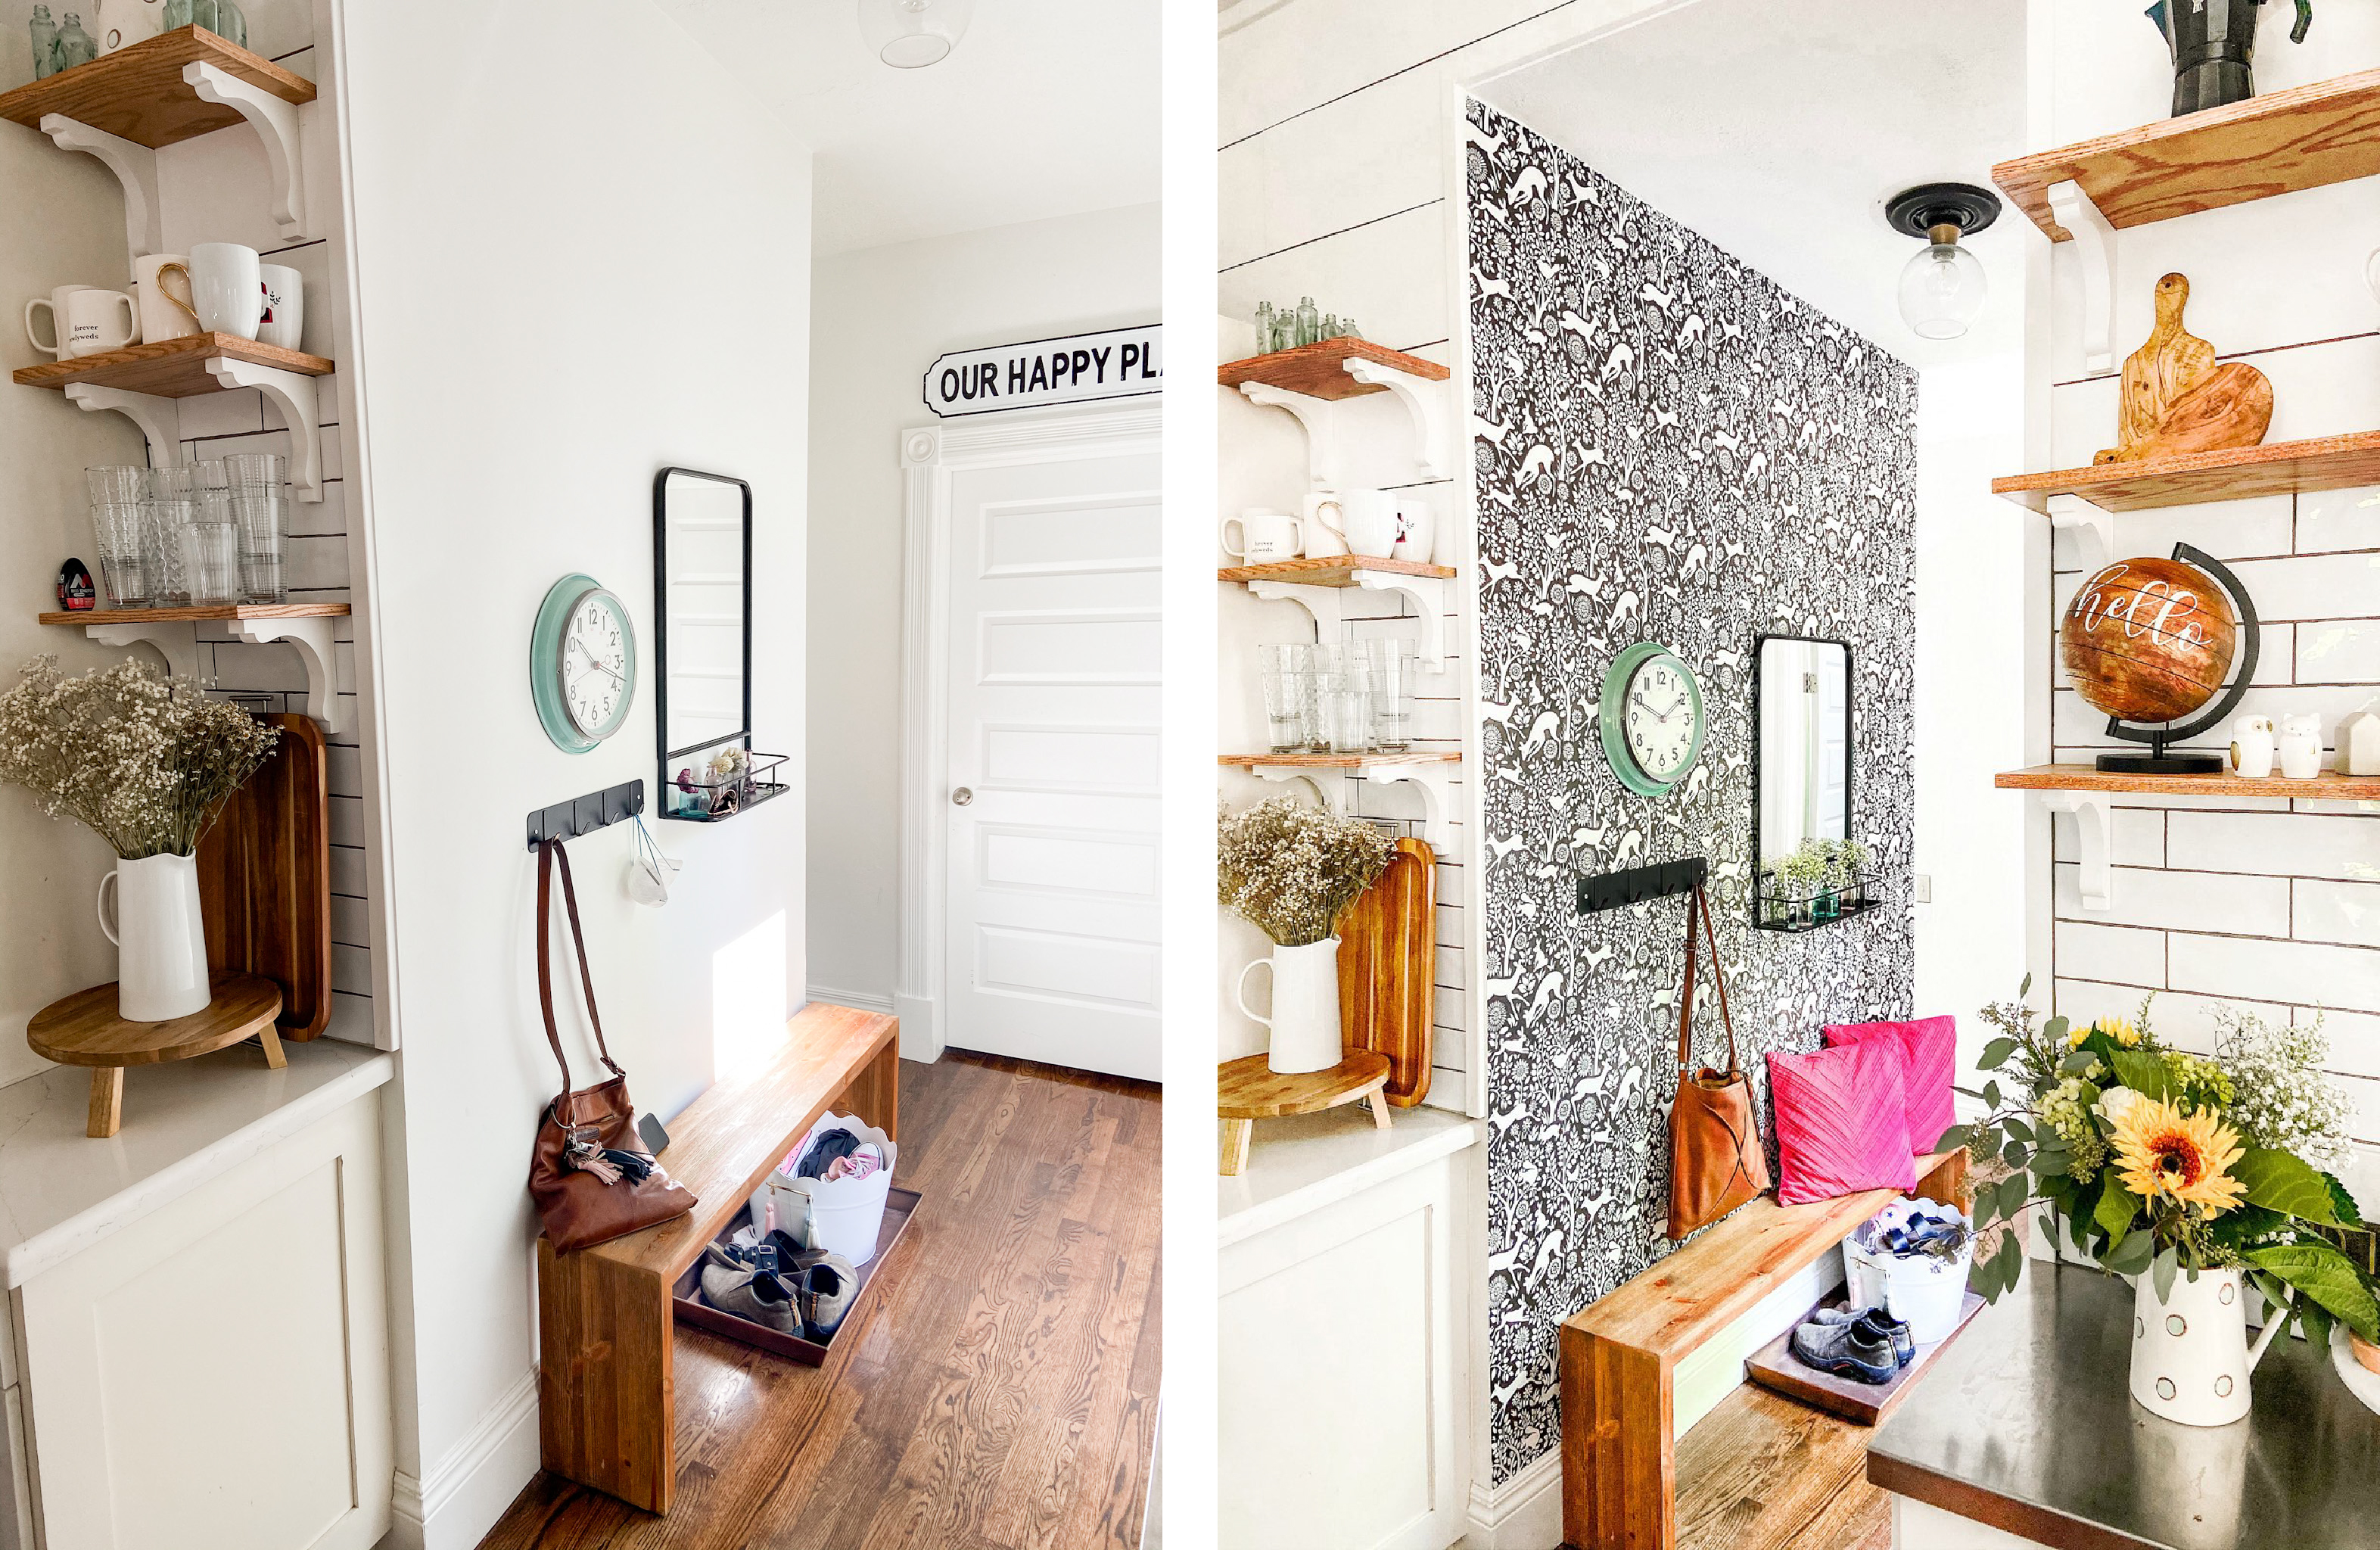 Removable Wallpaper Installation Tips and Tricks!